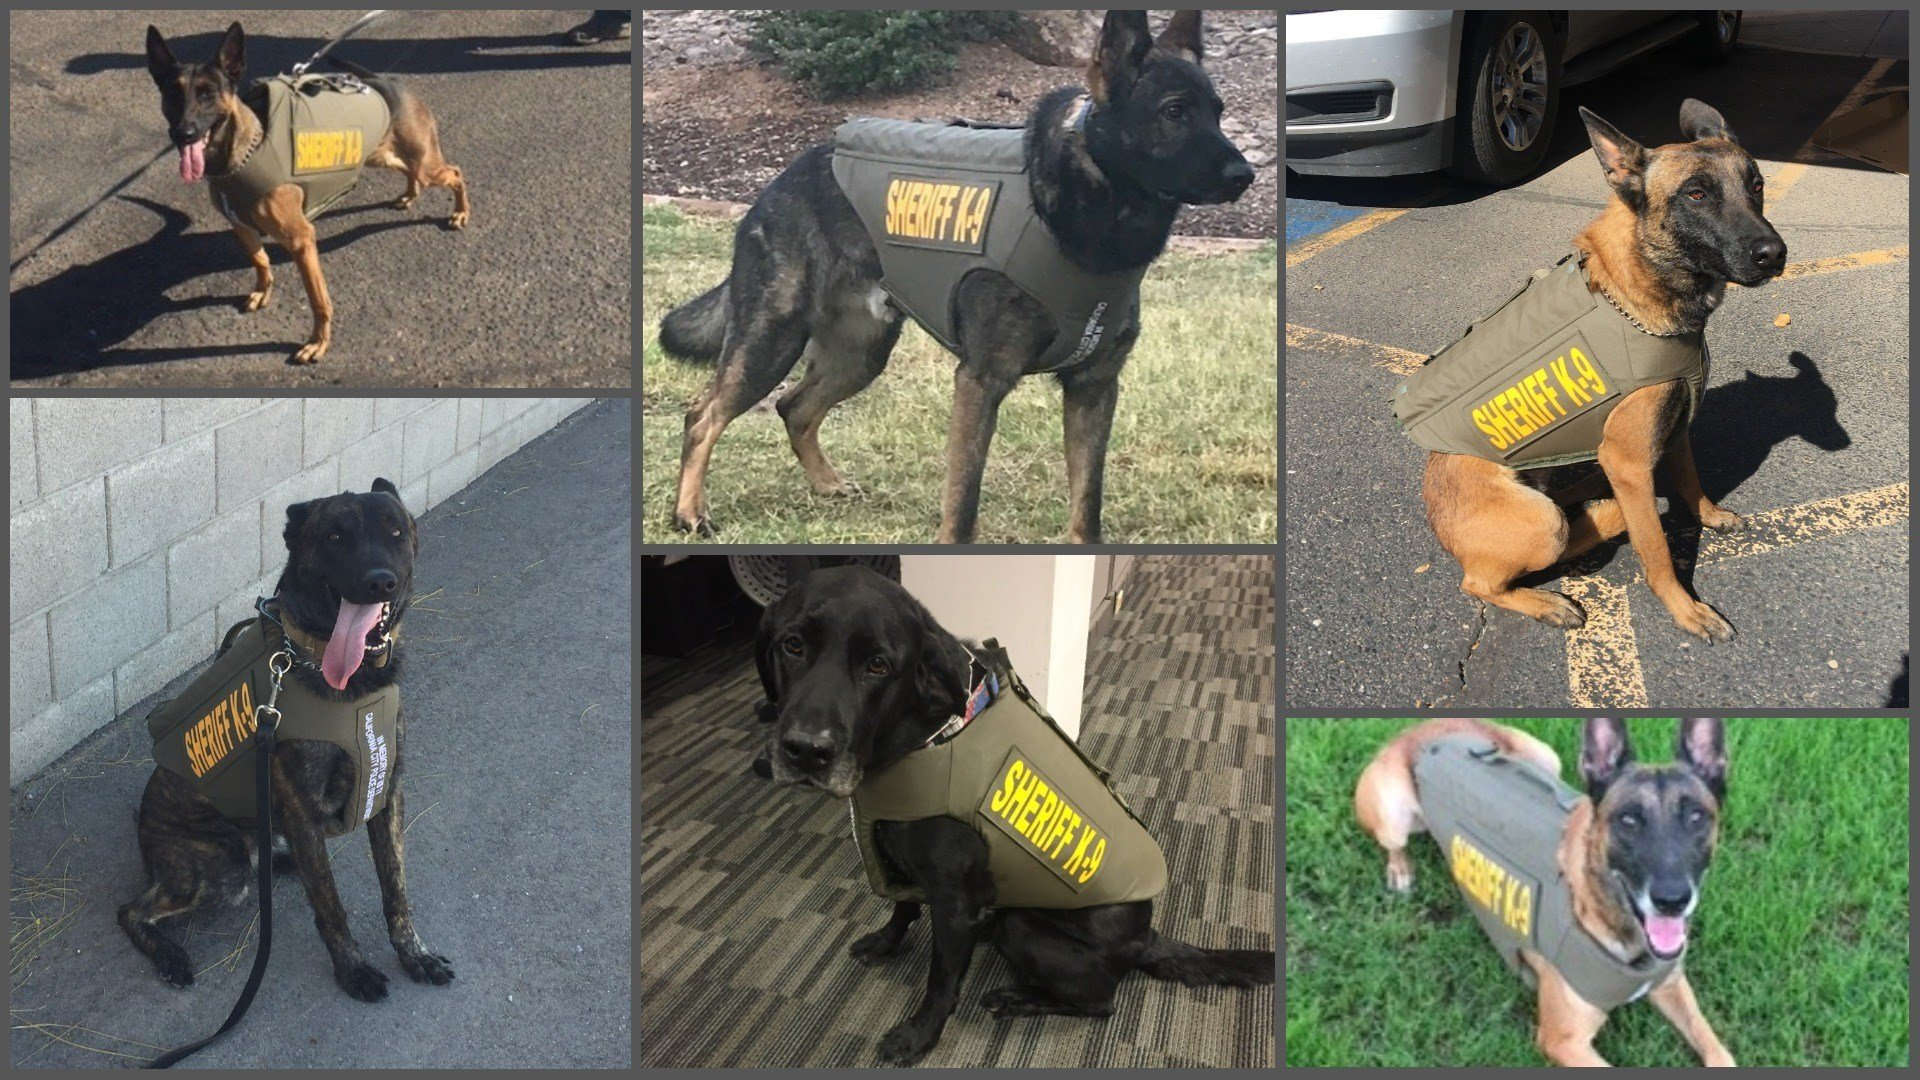 Six MCSO K-9 just received body armor designed just for them. Top: Osa, Bach and Karl. Bottom: Ryker, Bull and Hero (Source: Maricopa County Sheriff's Office)